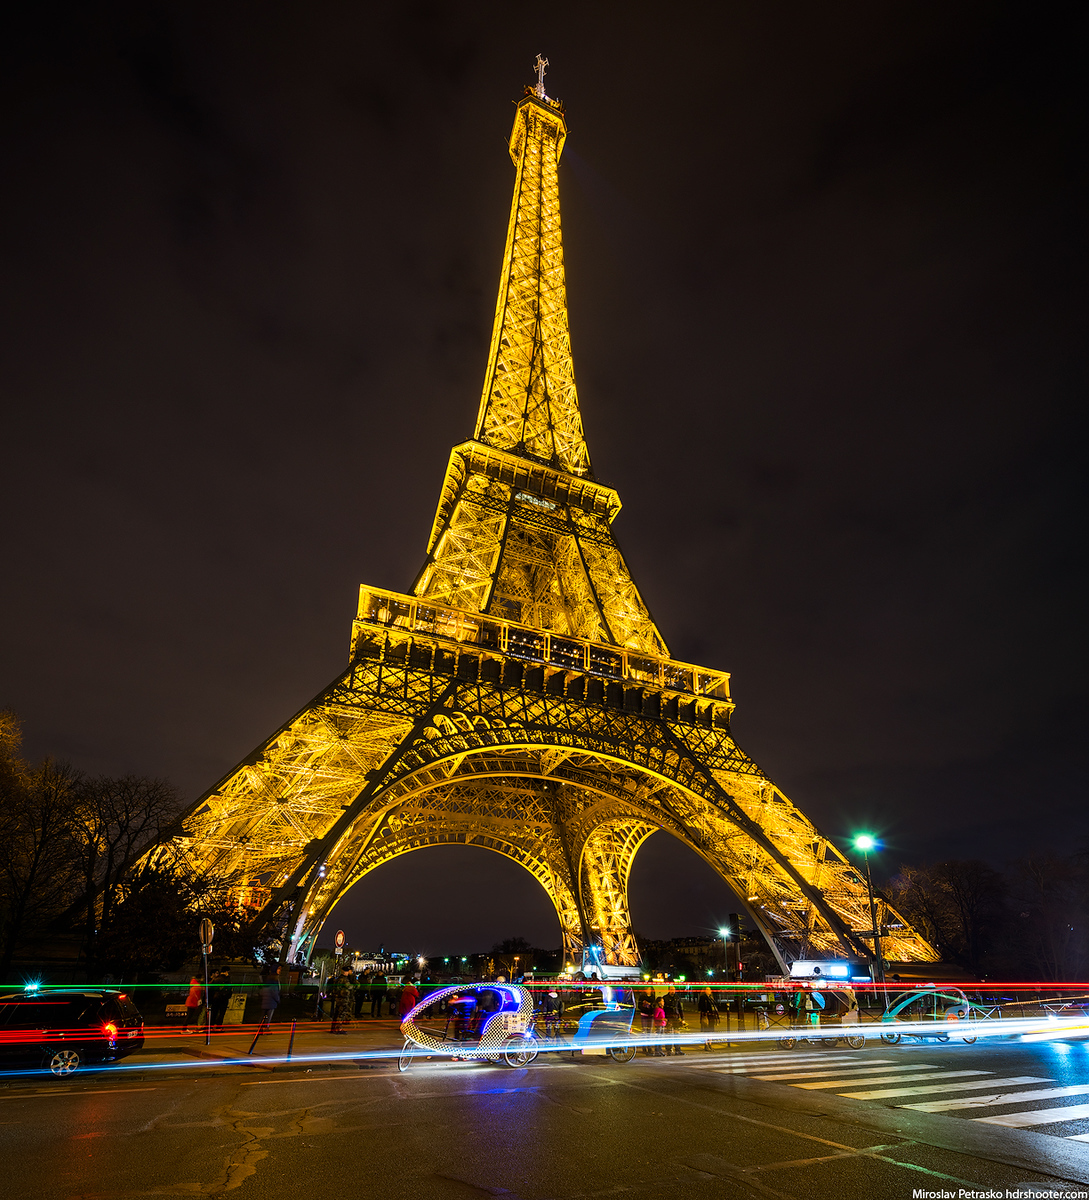 Eiffel tower glowing in the night, Paris, France